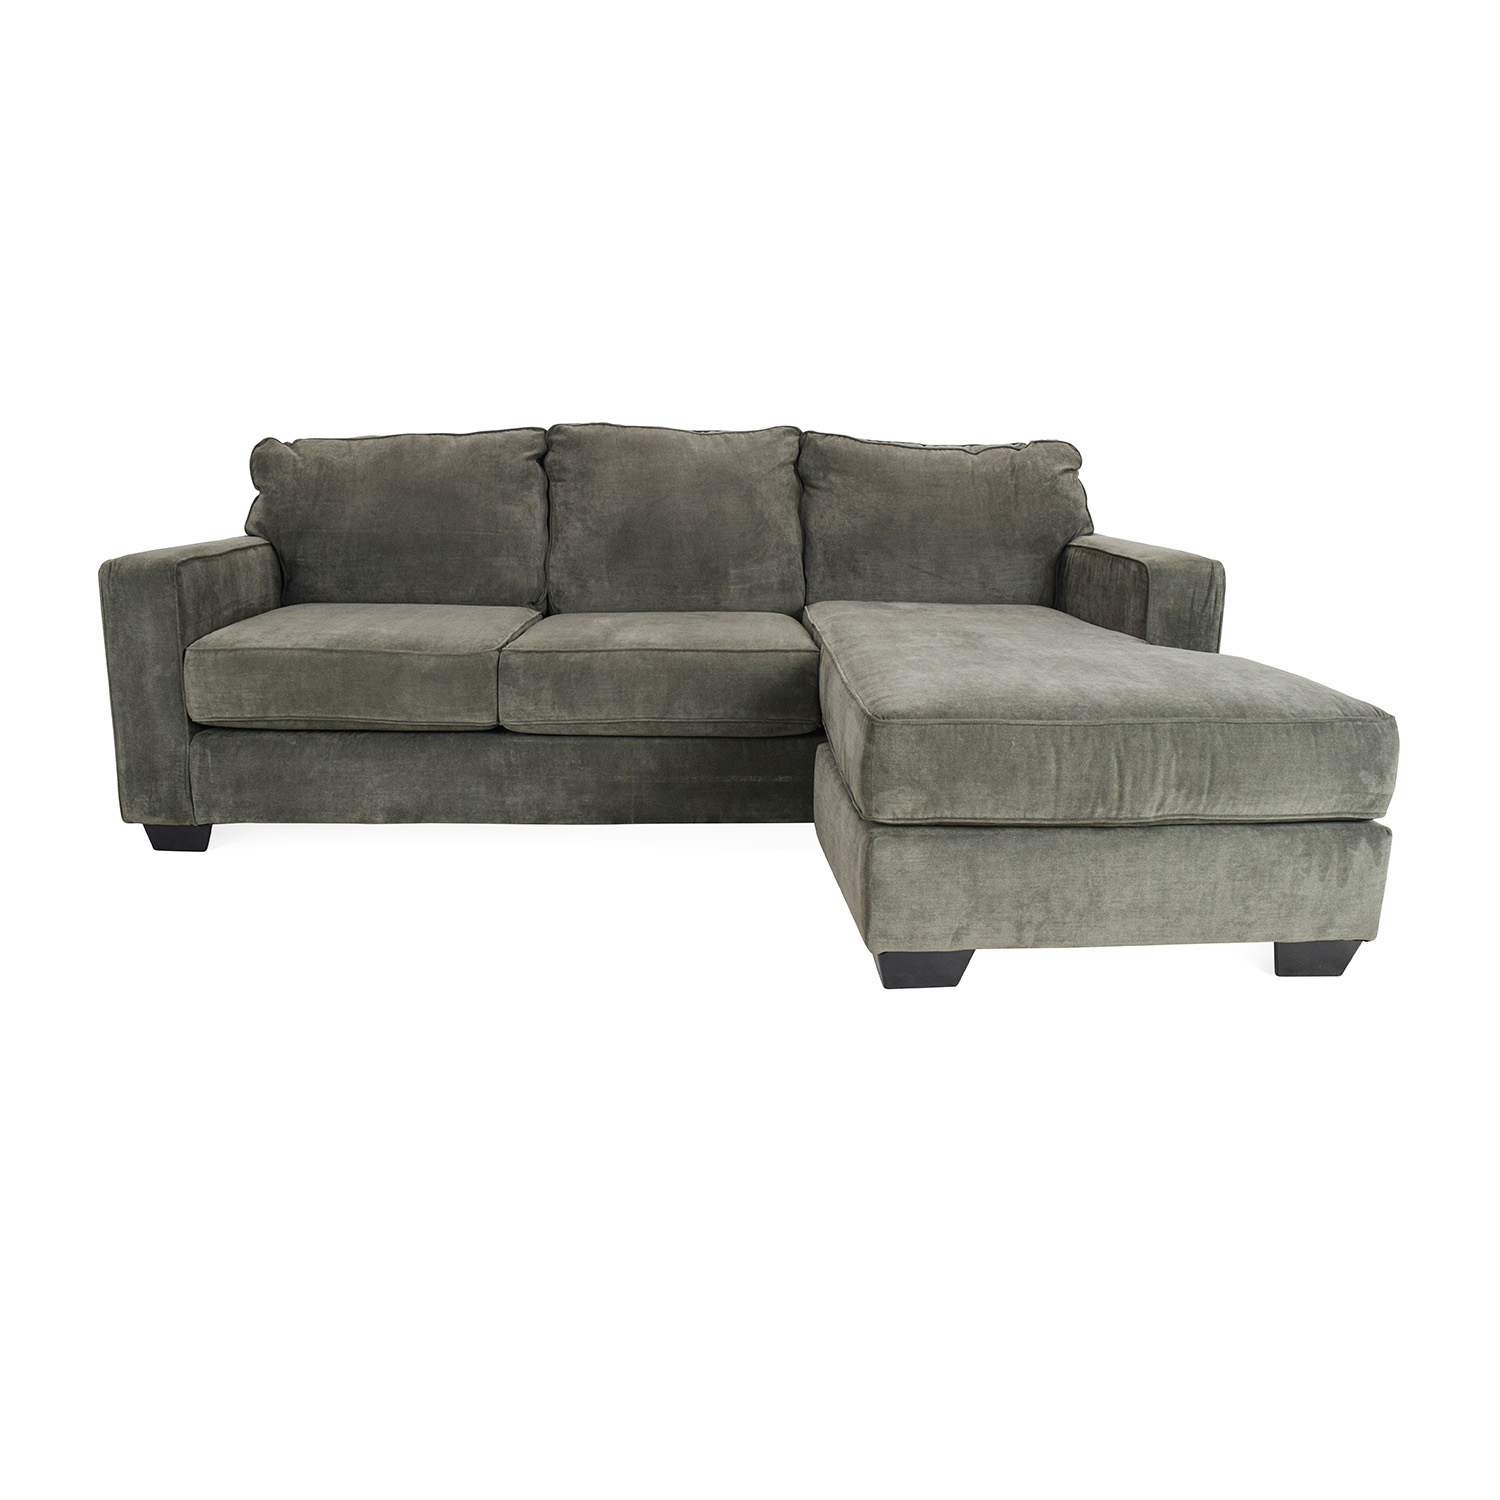 Jennifer Convertibles Sectional Sofa  sale